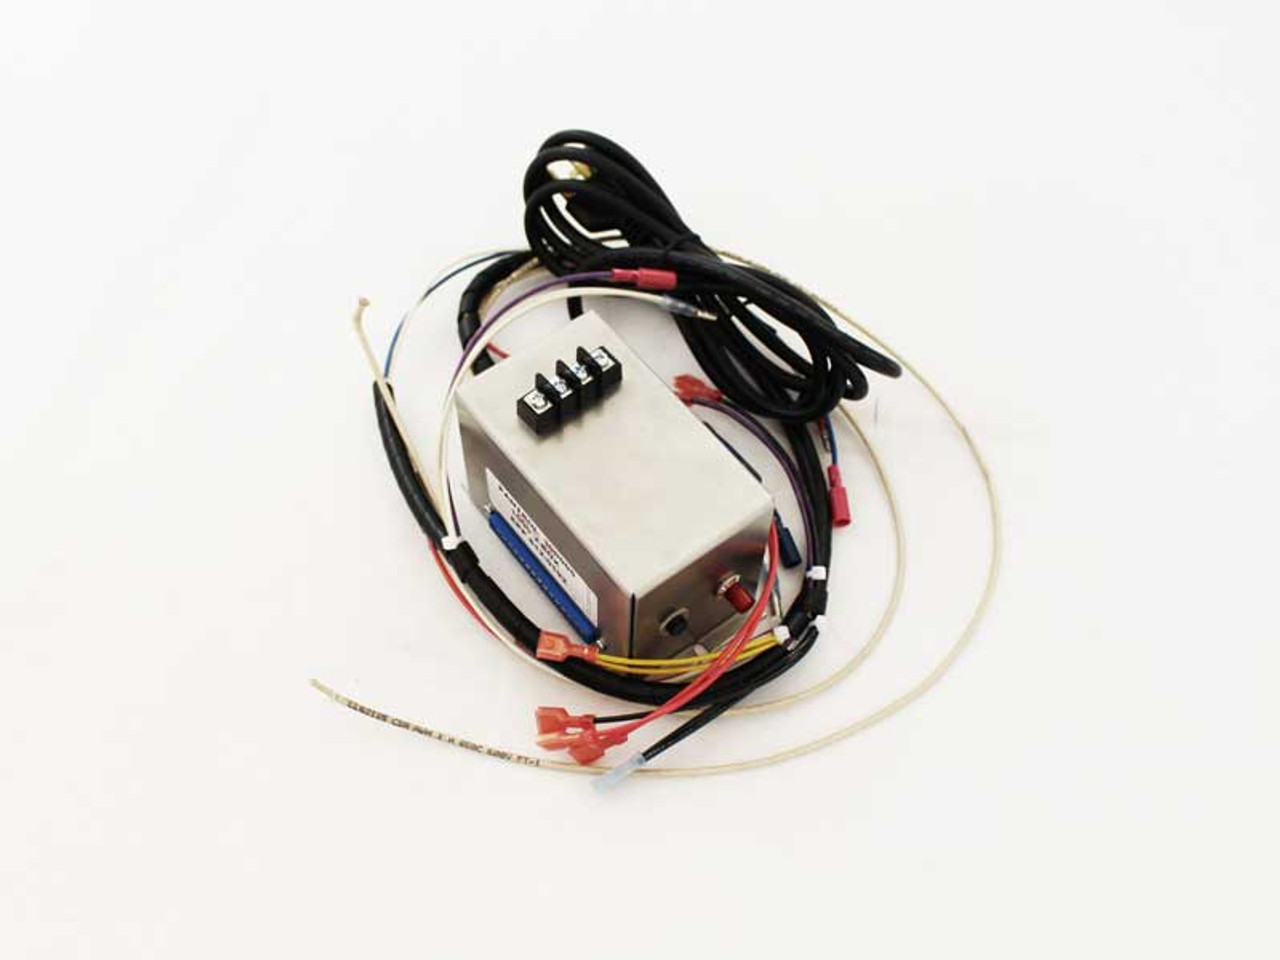 junction box w wiring harness for the quadrafire 1000 pellet stove (812 0192) Pellet Stove Safety